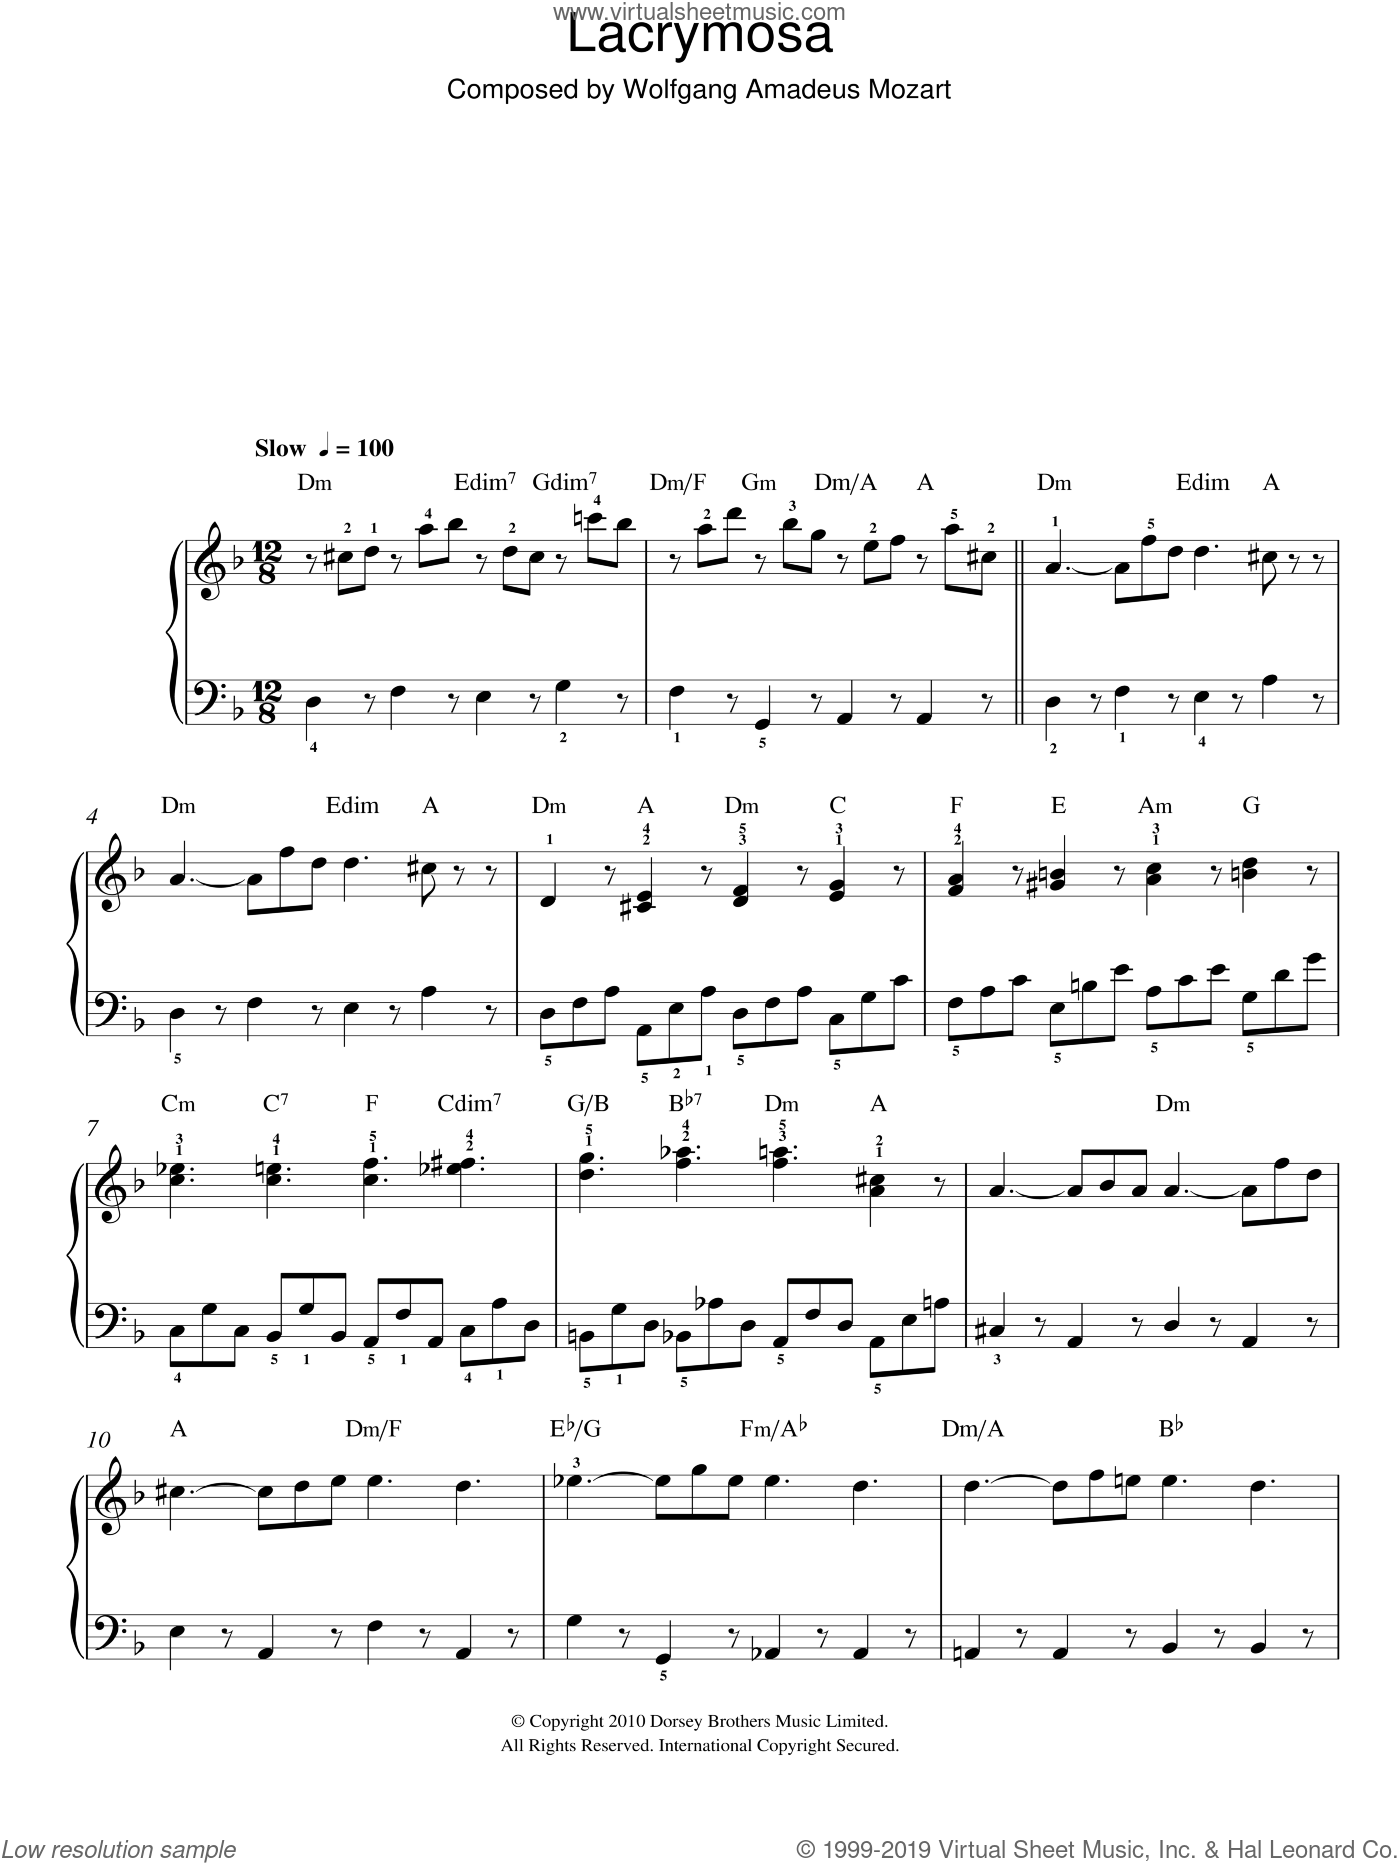 Lacrymosa (from Requiem Mass) sheet music for piano solo by Wolfgang Amadeus Mozart, classical score, easy skill level